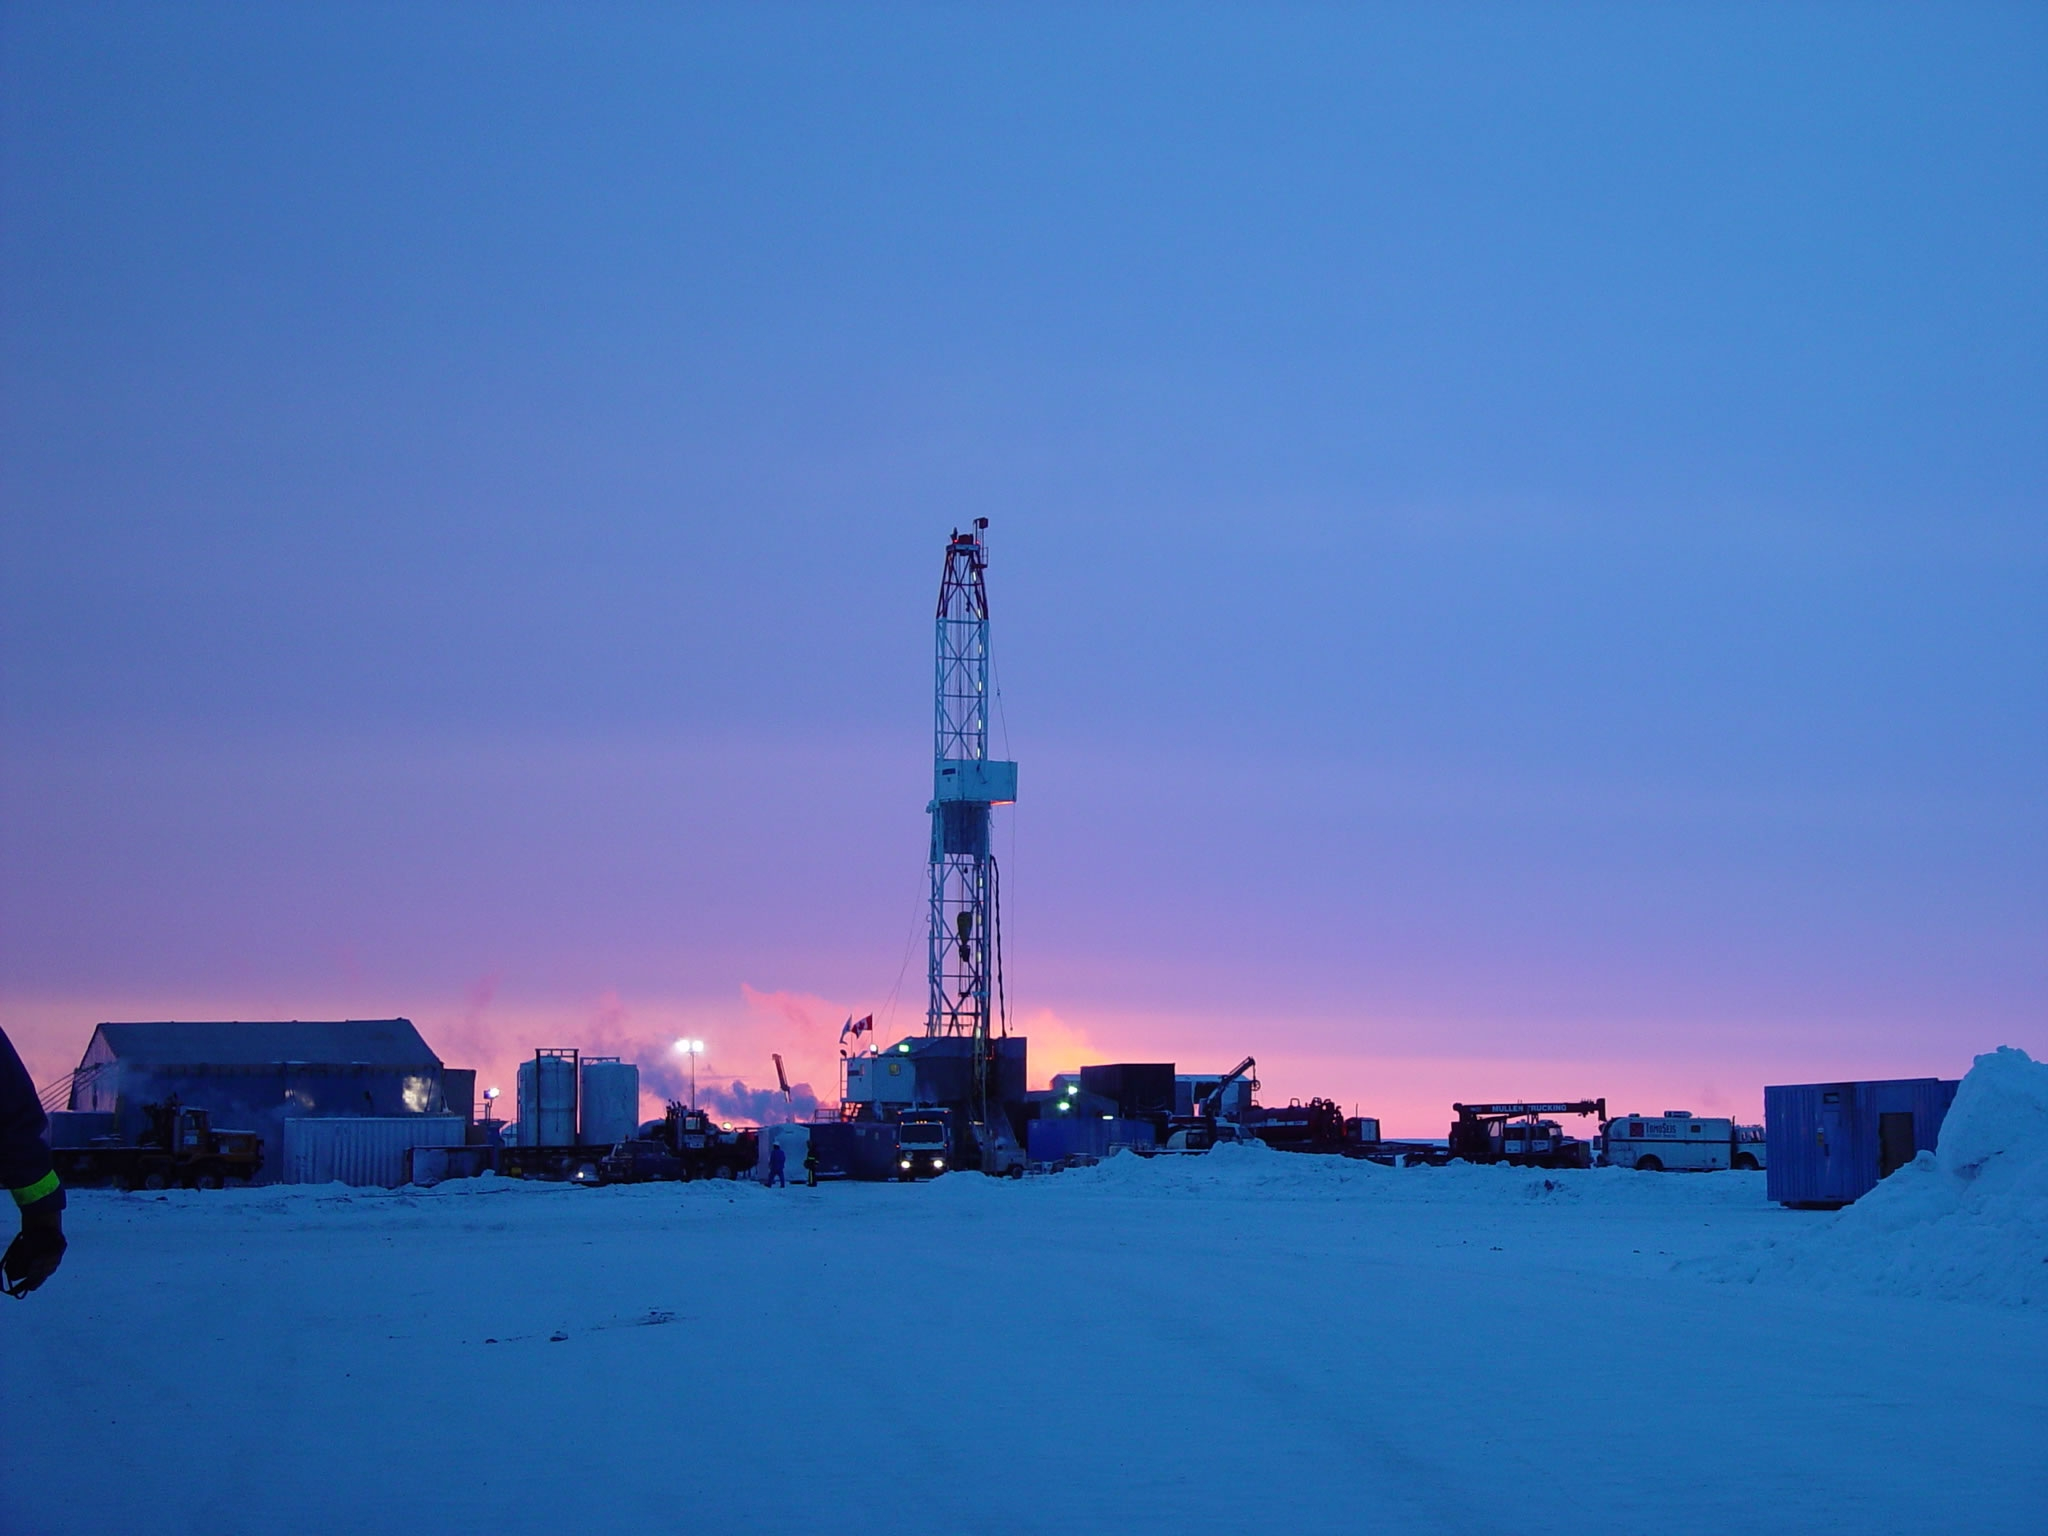 hydrate gas test well in Canada